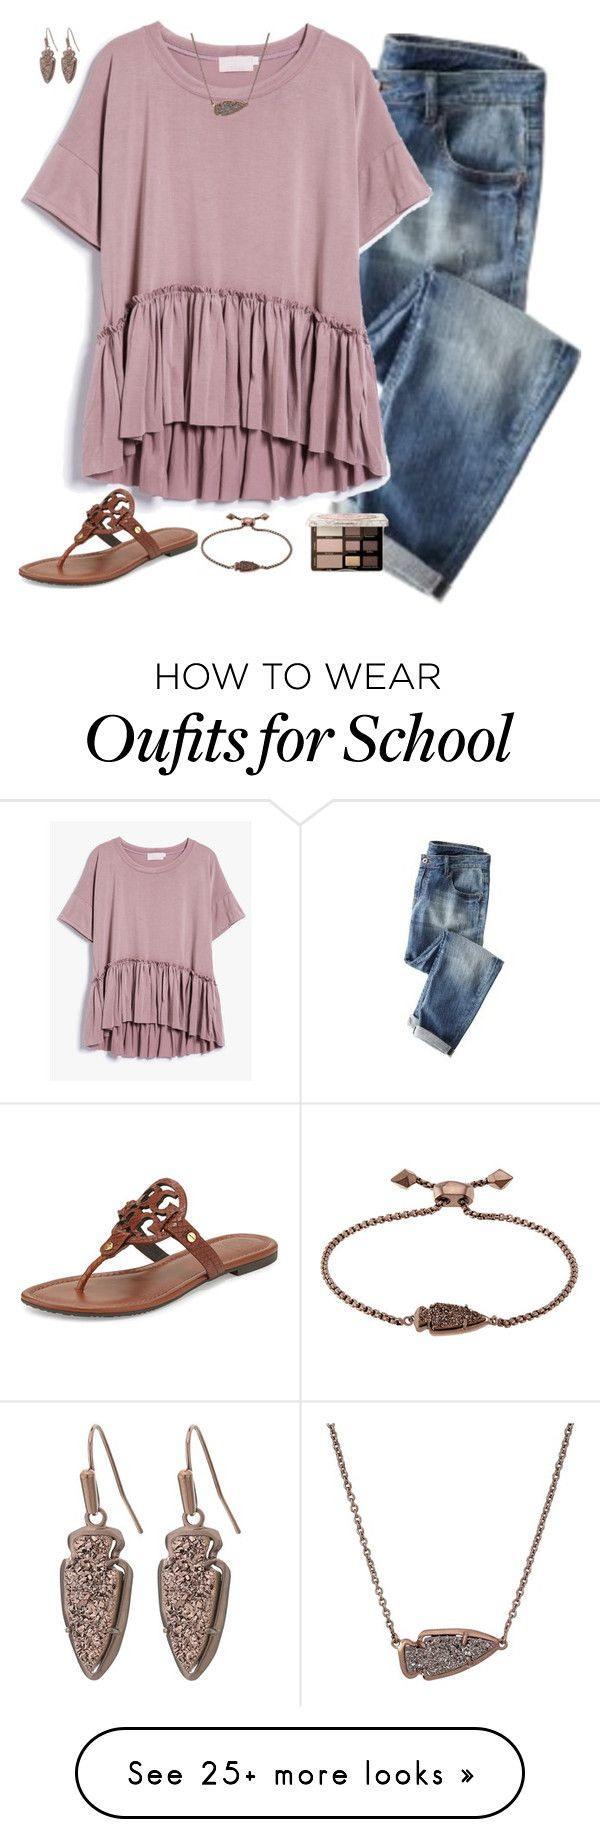 """""""this is bad cause, school........."""" by simplysarahkate on Polyvore featuring Wrap, Too Faced Cosmetics, Kendra Scott and Tory Burch"""